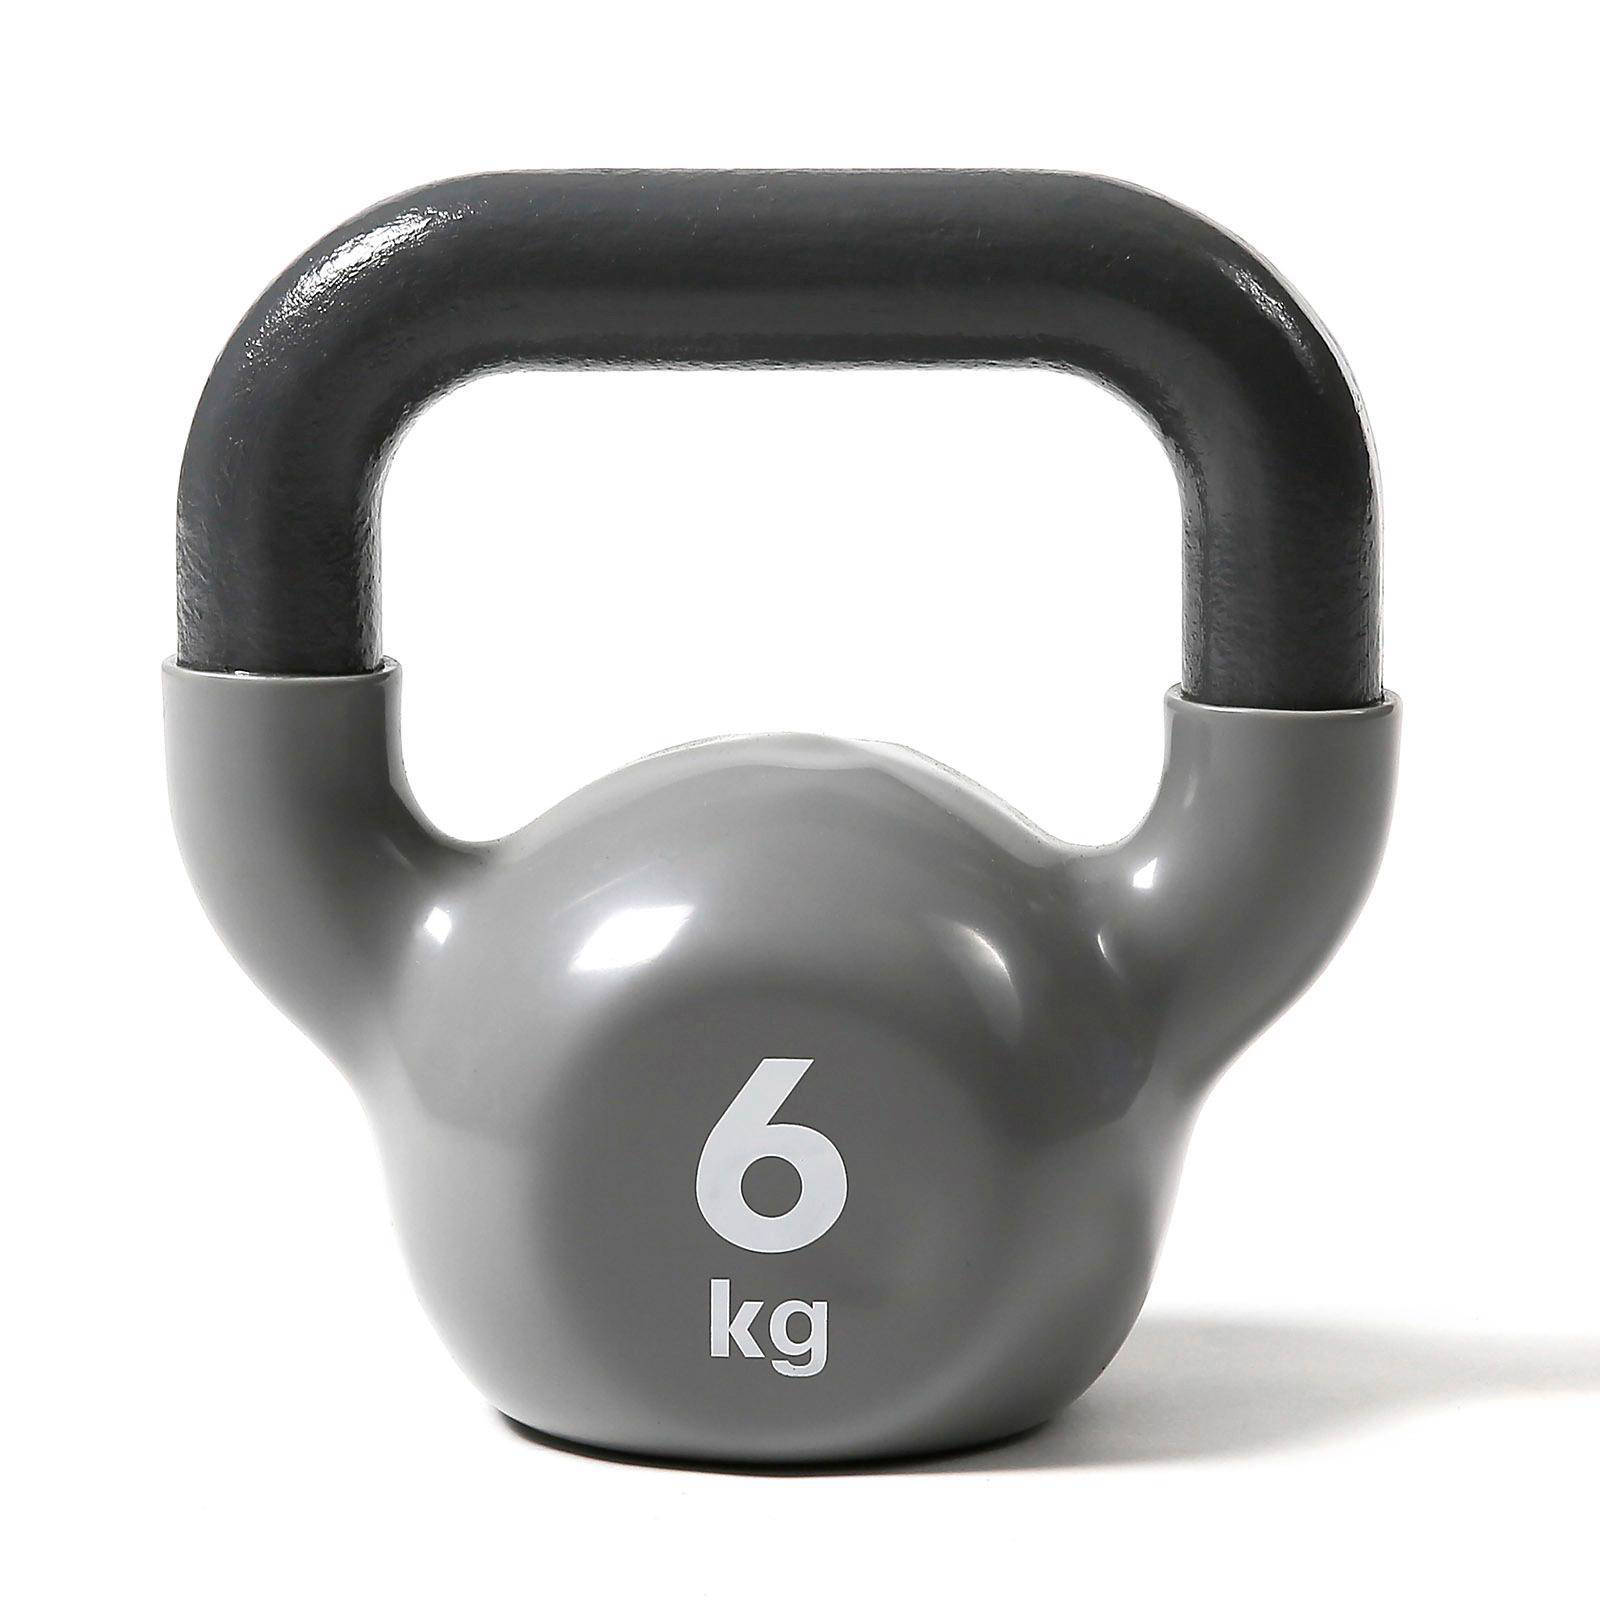 Reebok Women's training kettlebell 6 kg